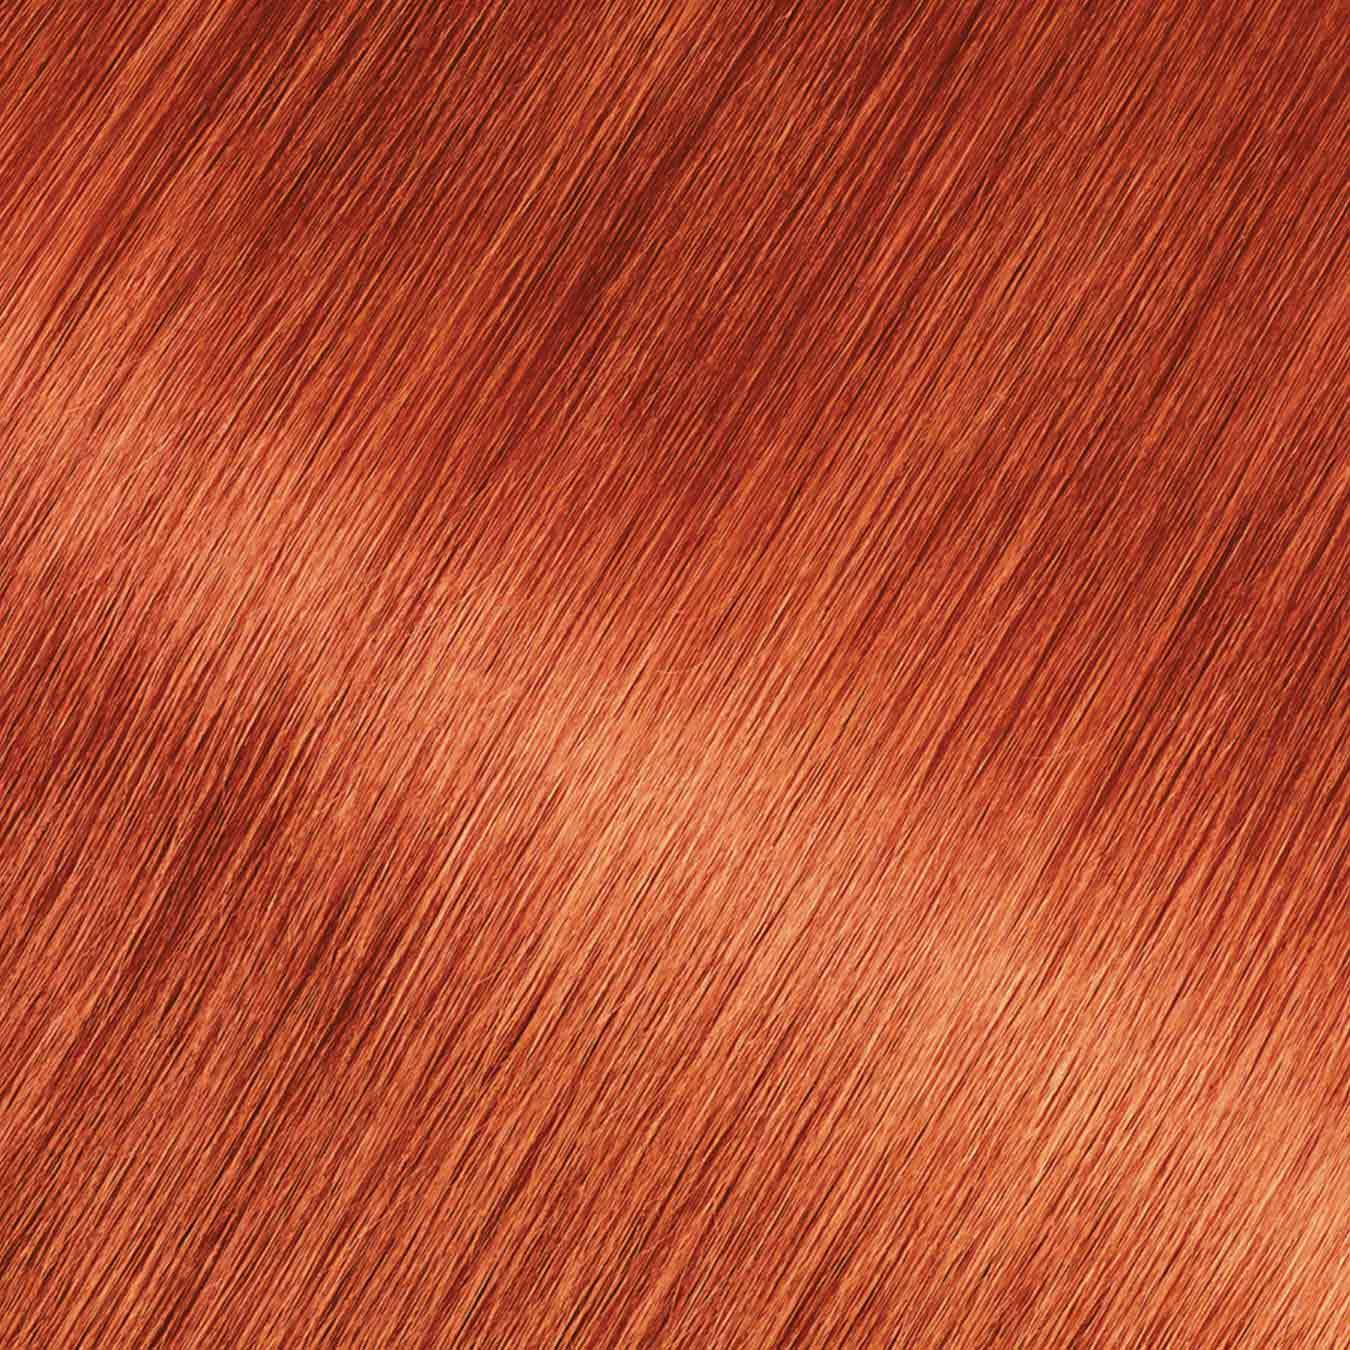 Hair Swatch of Olia Bold 7.45 - Intense Fire Ruby.